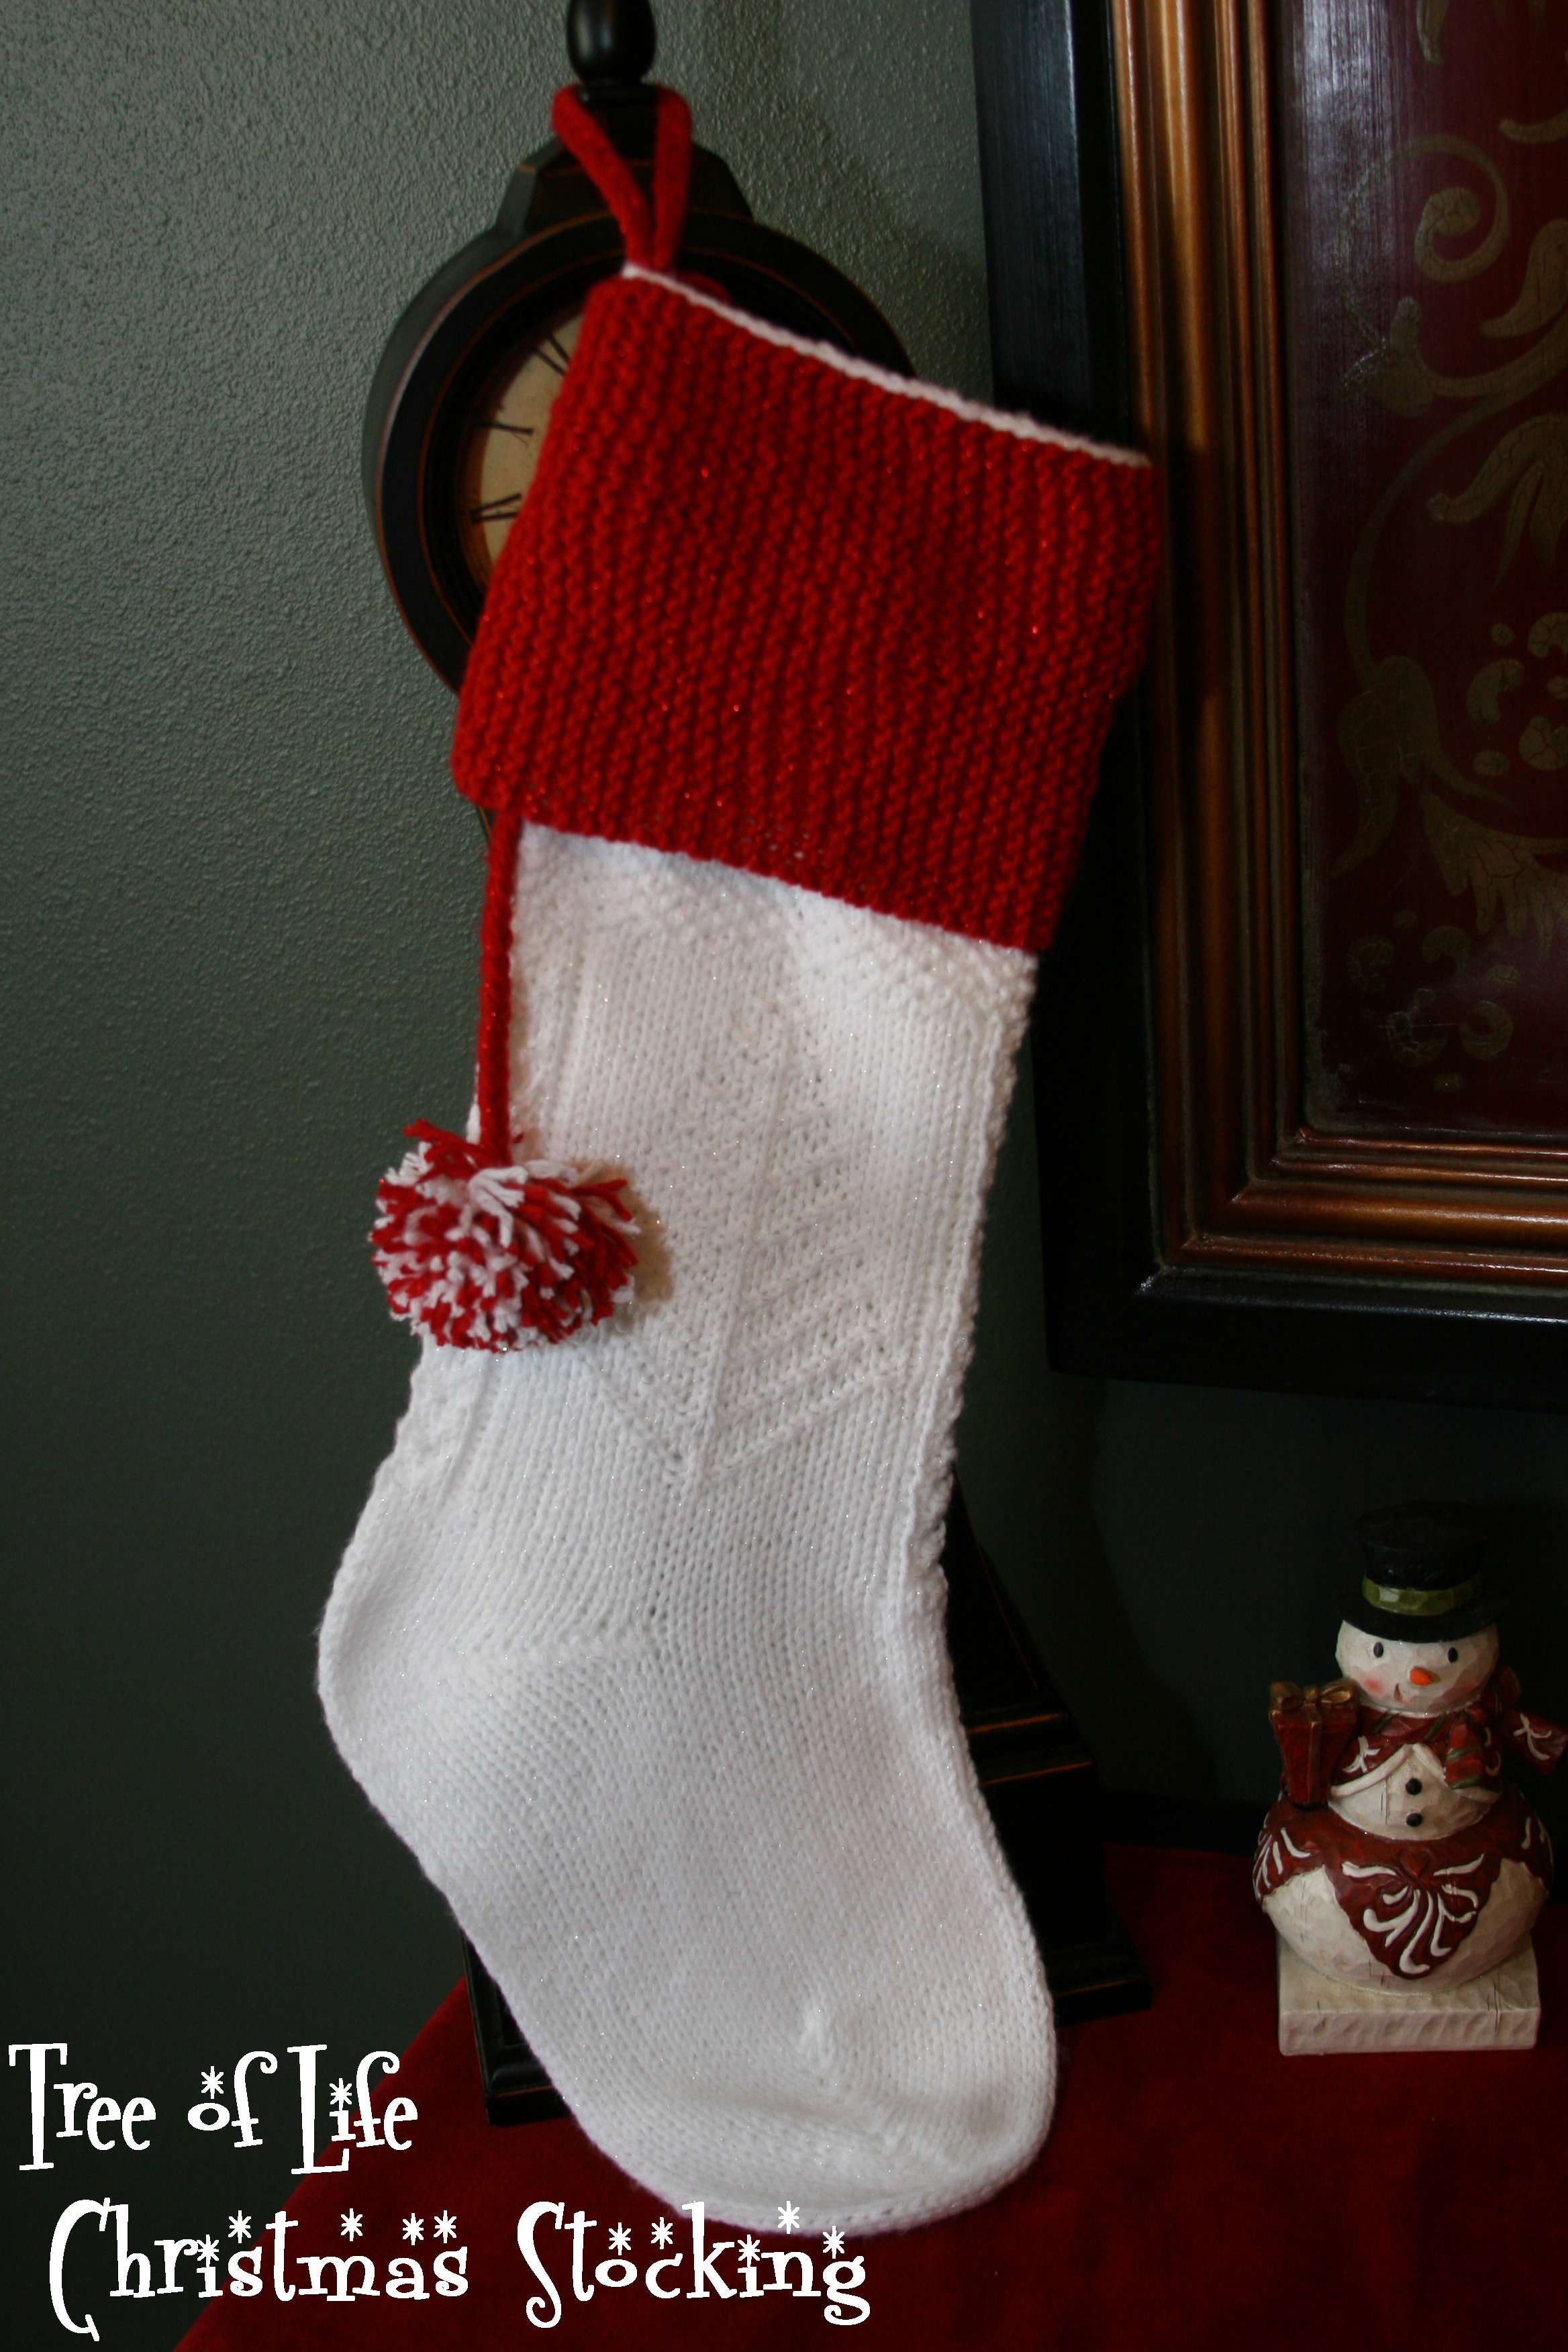 Knit Christmas Stocking Pattern Free : Happy Holidays!!! Christmas Stocking Pattern   Knitting Board Blog